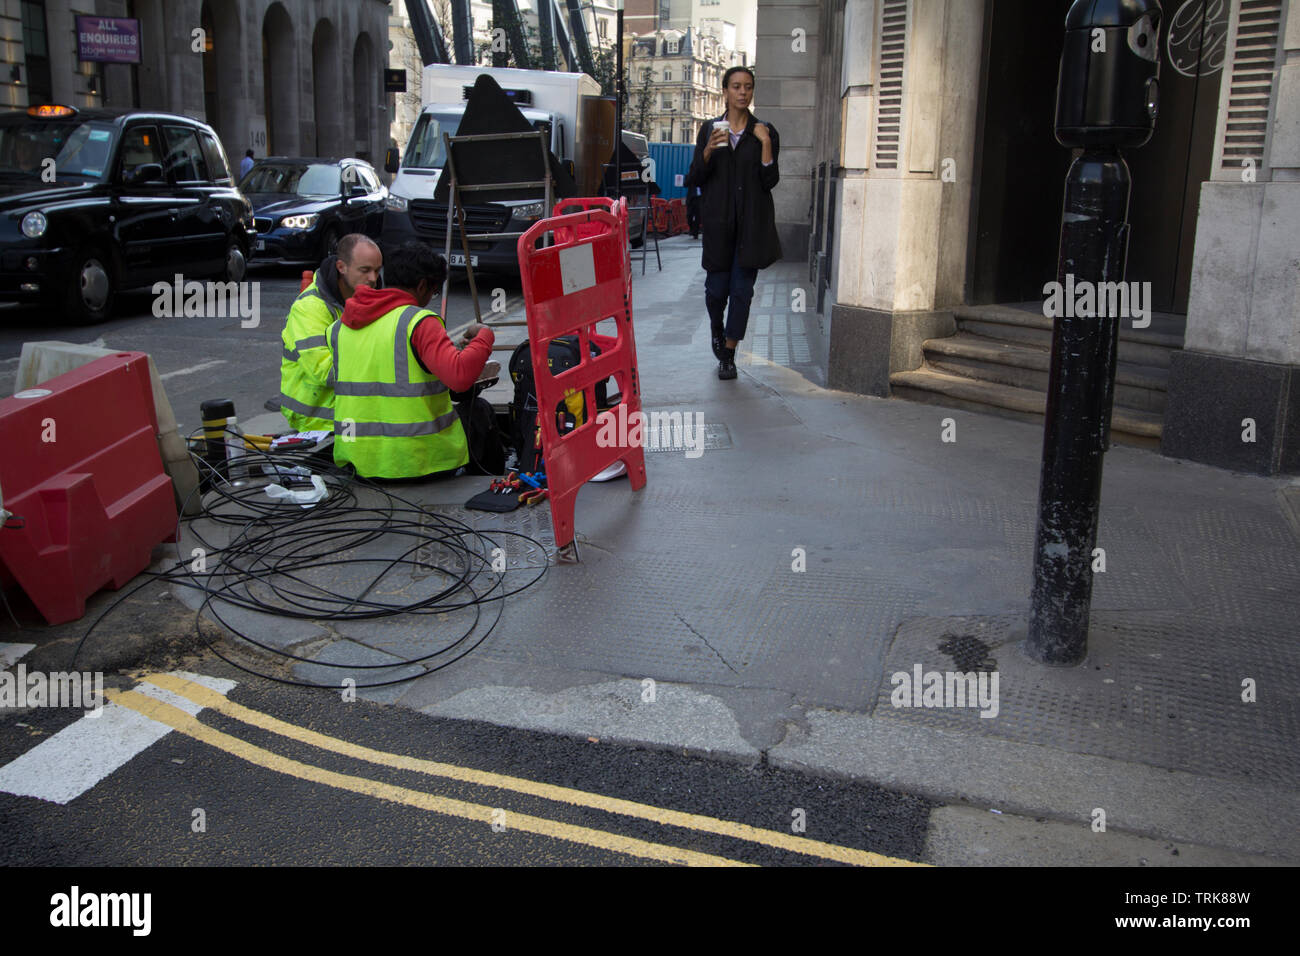 Telecoms engineers working on cable cabling in city of London Street - Stock Image